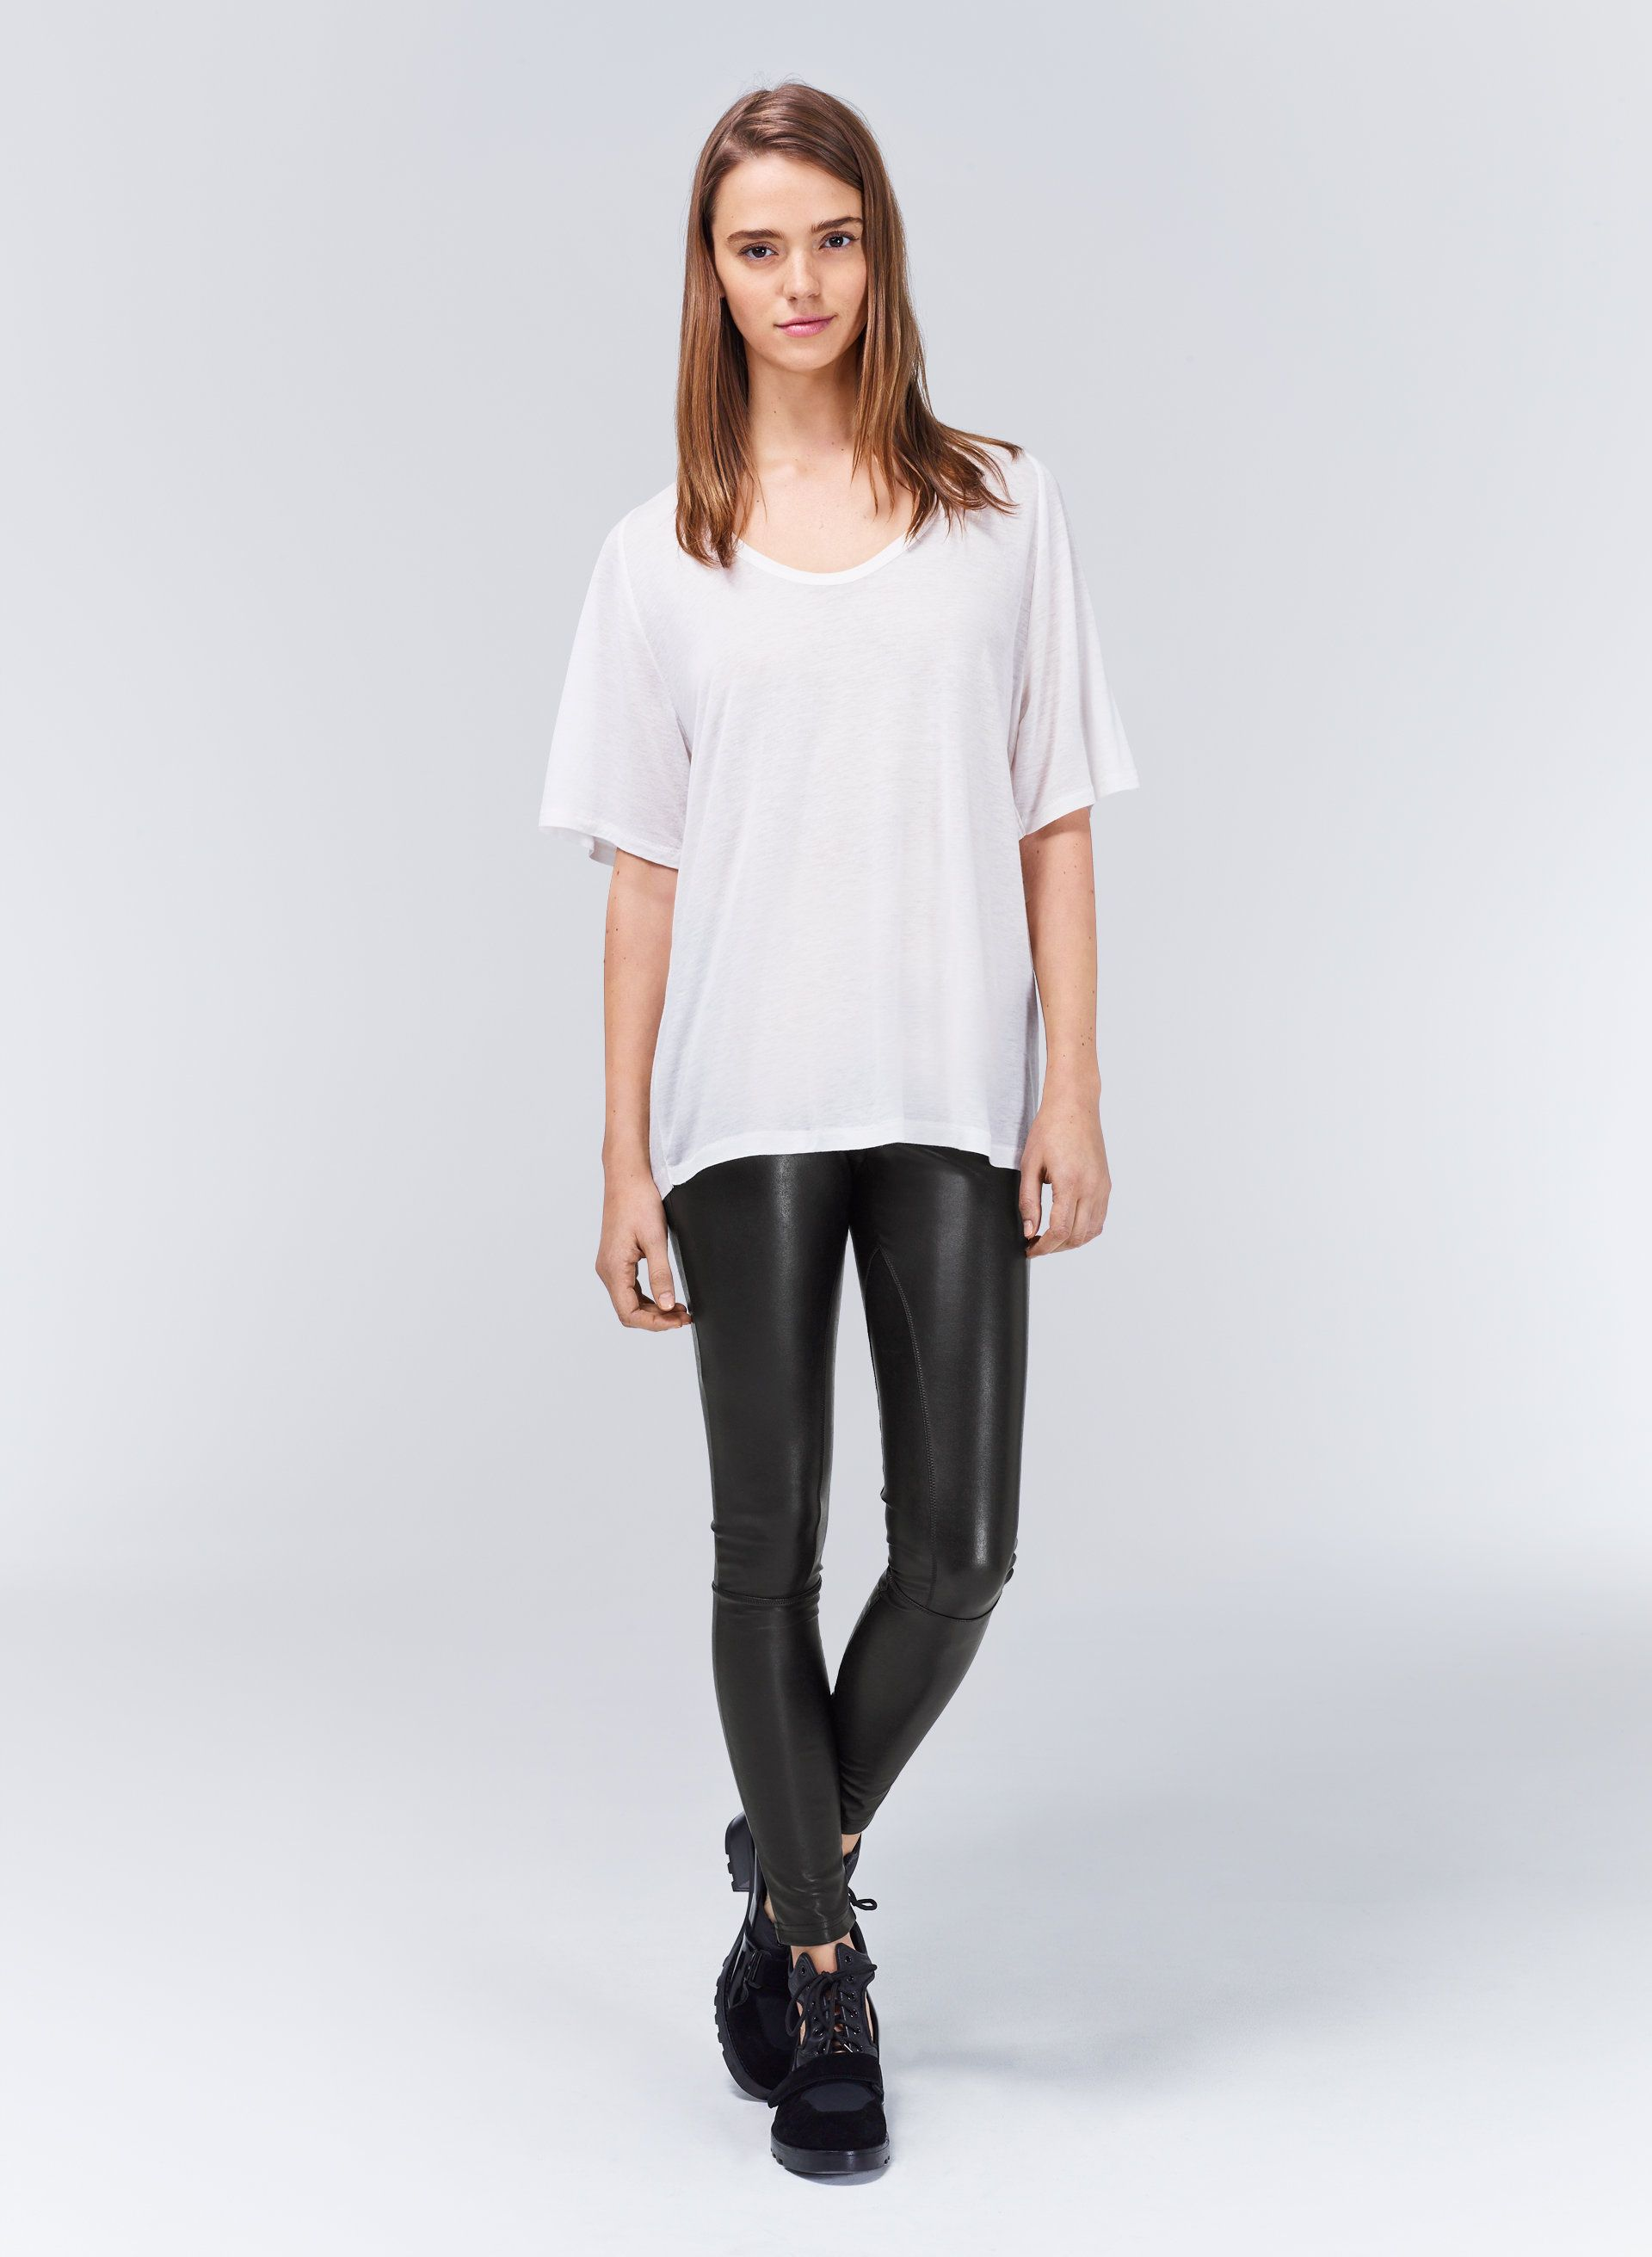 Wilfred Free REBELLE PANT <3  i need new leather trousers